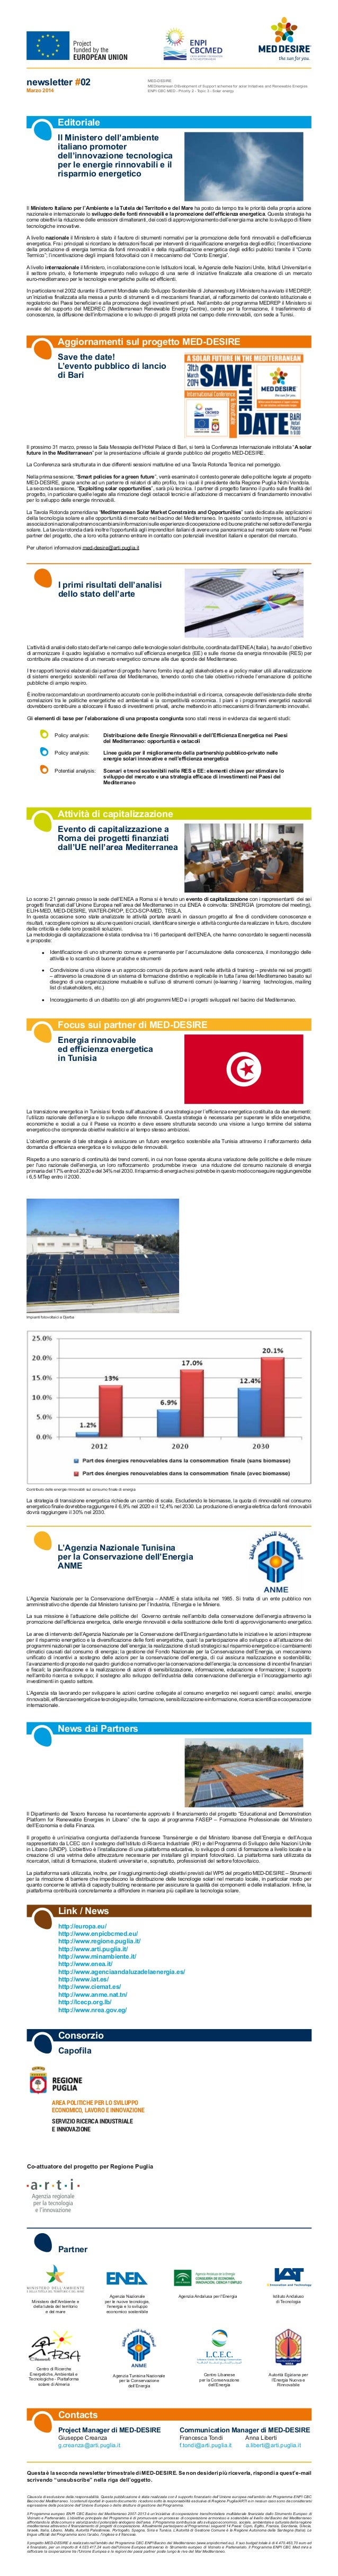 newsletter #02 Marzo 2014 MED-DESIRE MEDiterranean DEvelopment of Support schemes for solar Initiatives and Renewable Ener...